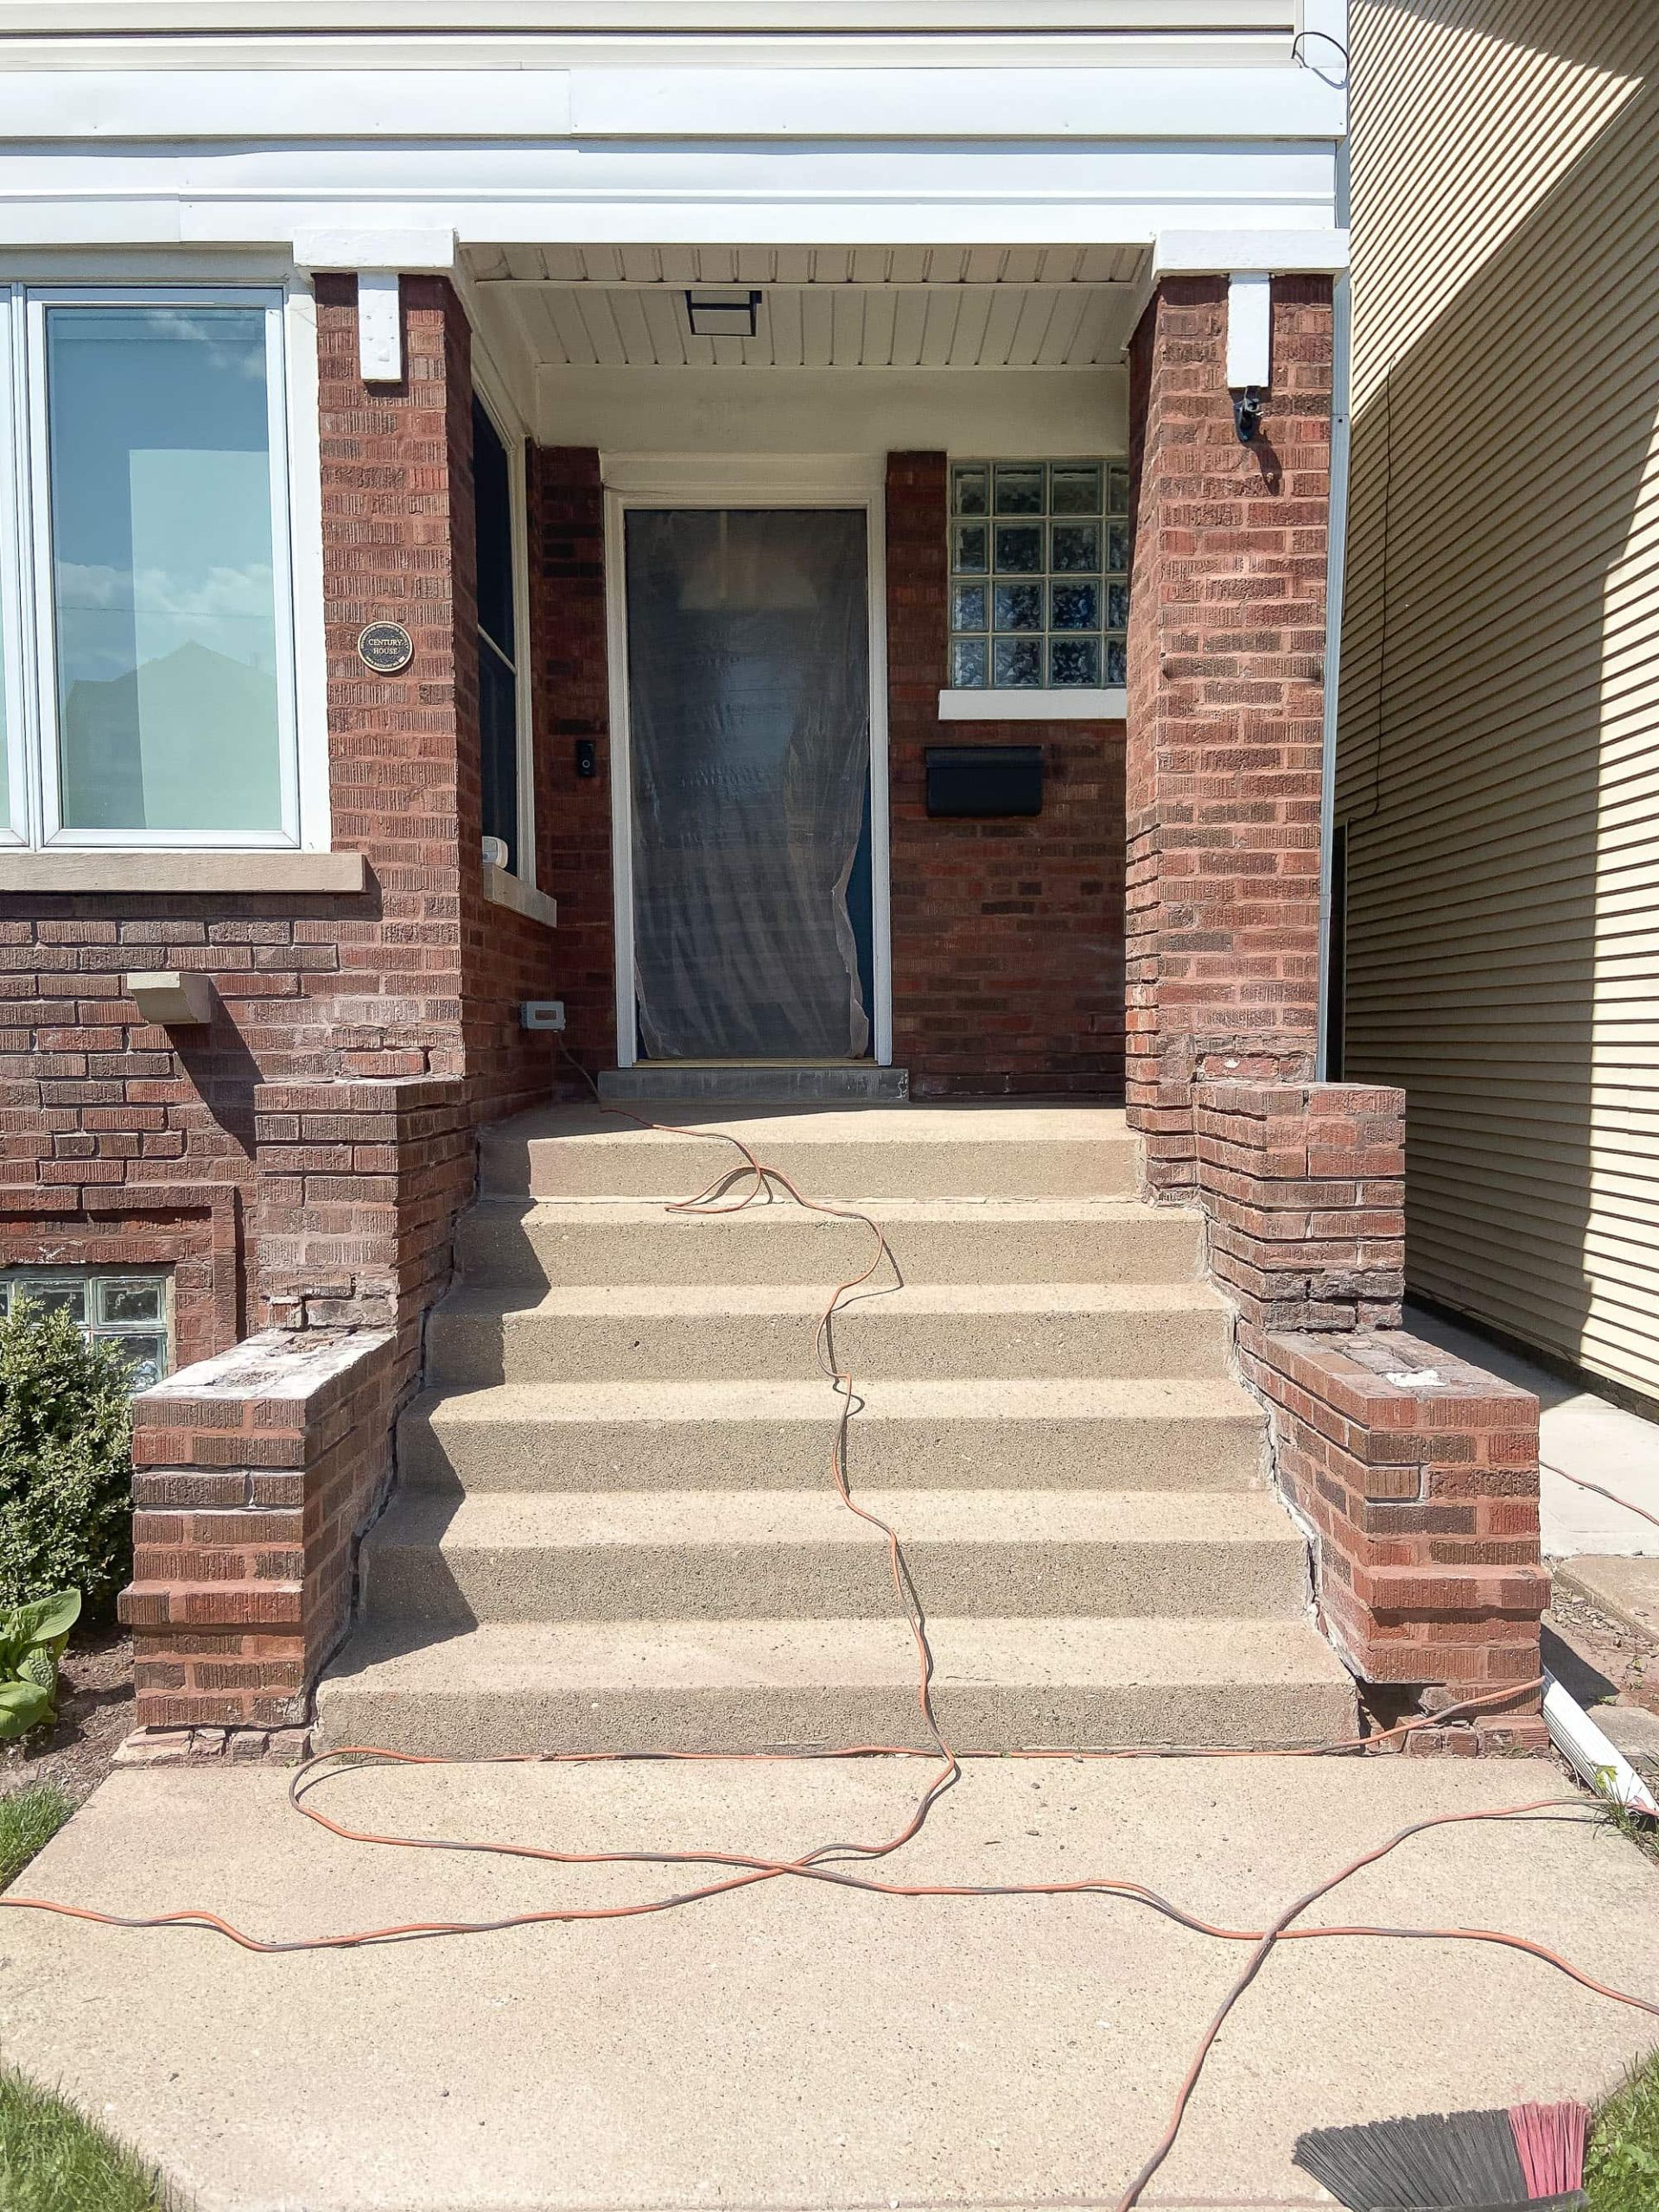 Working on the front porch of our home to repair our crumbling brick and mortar